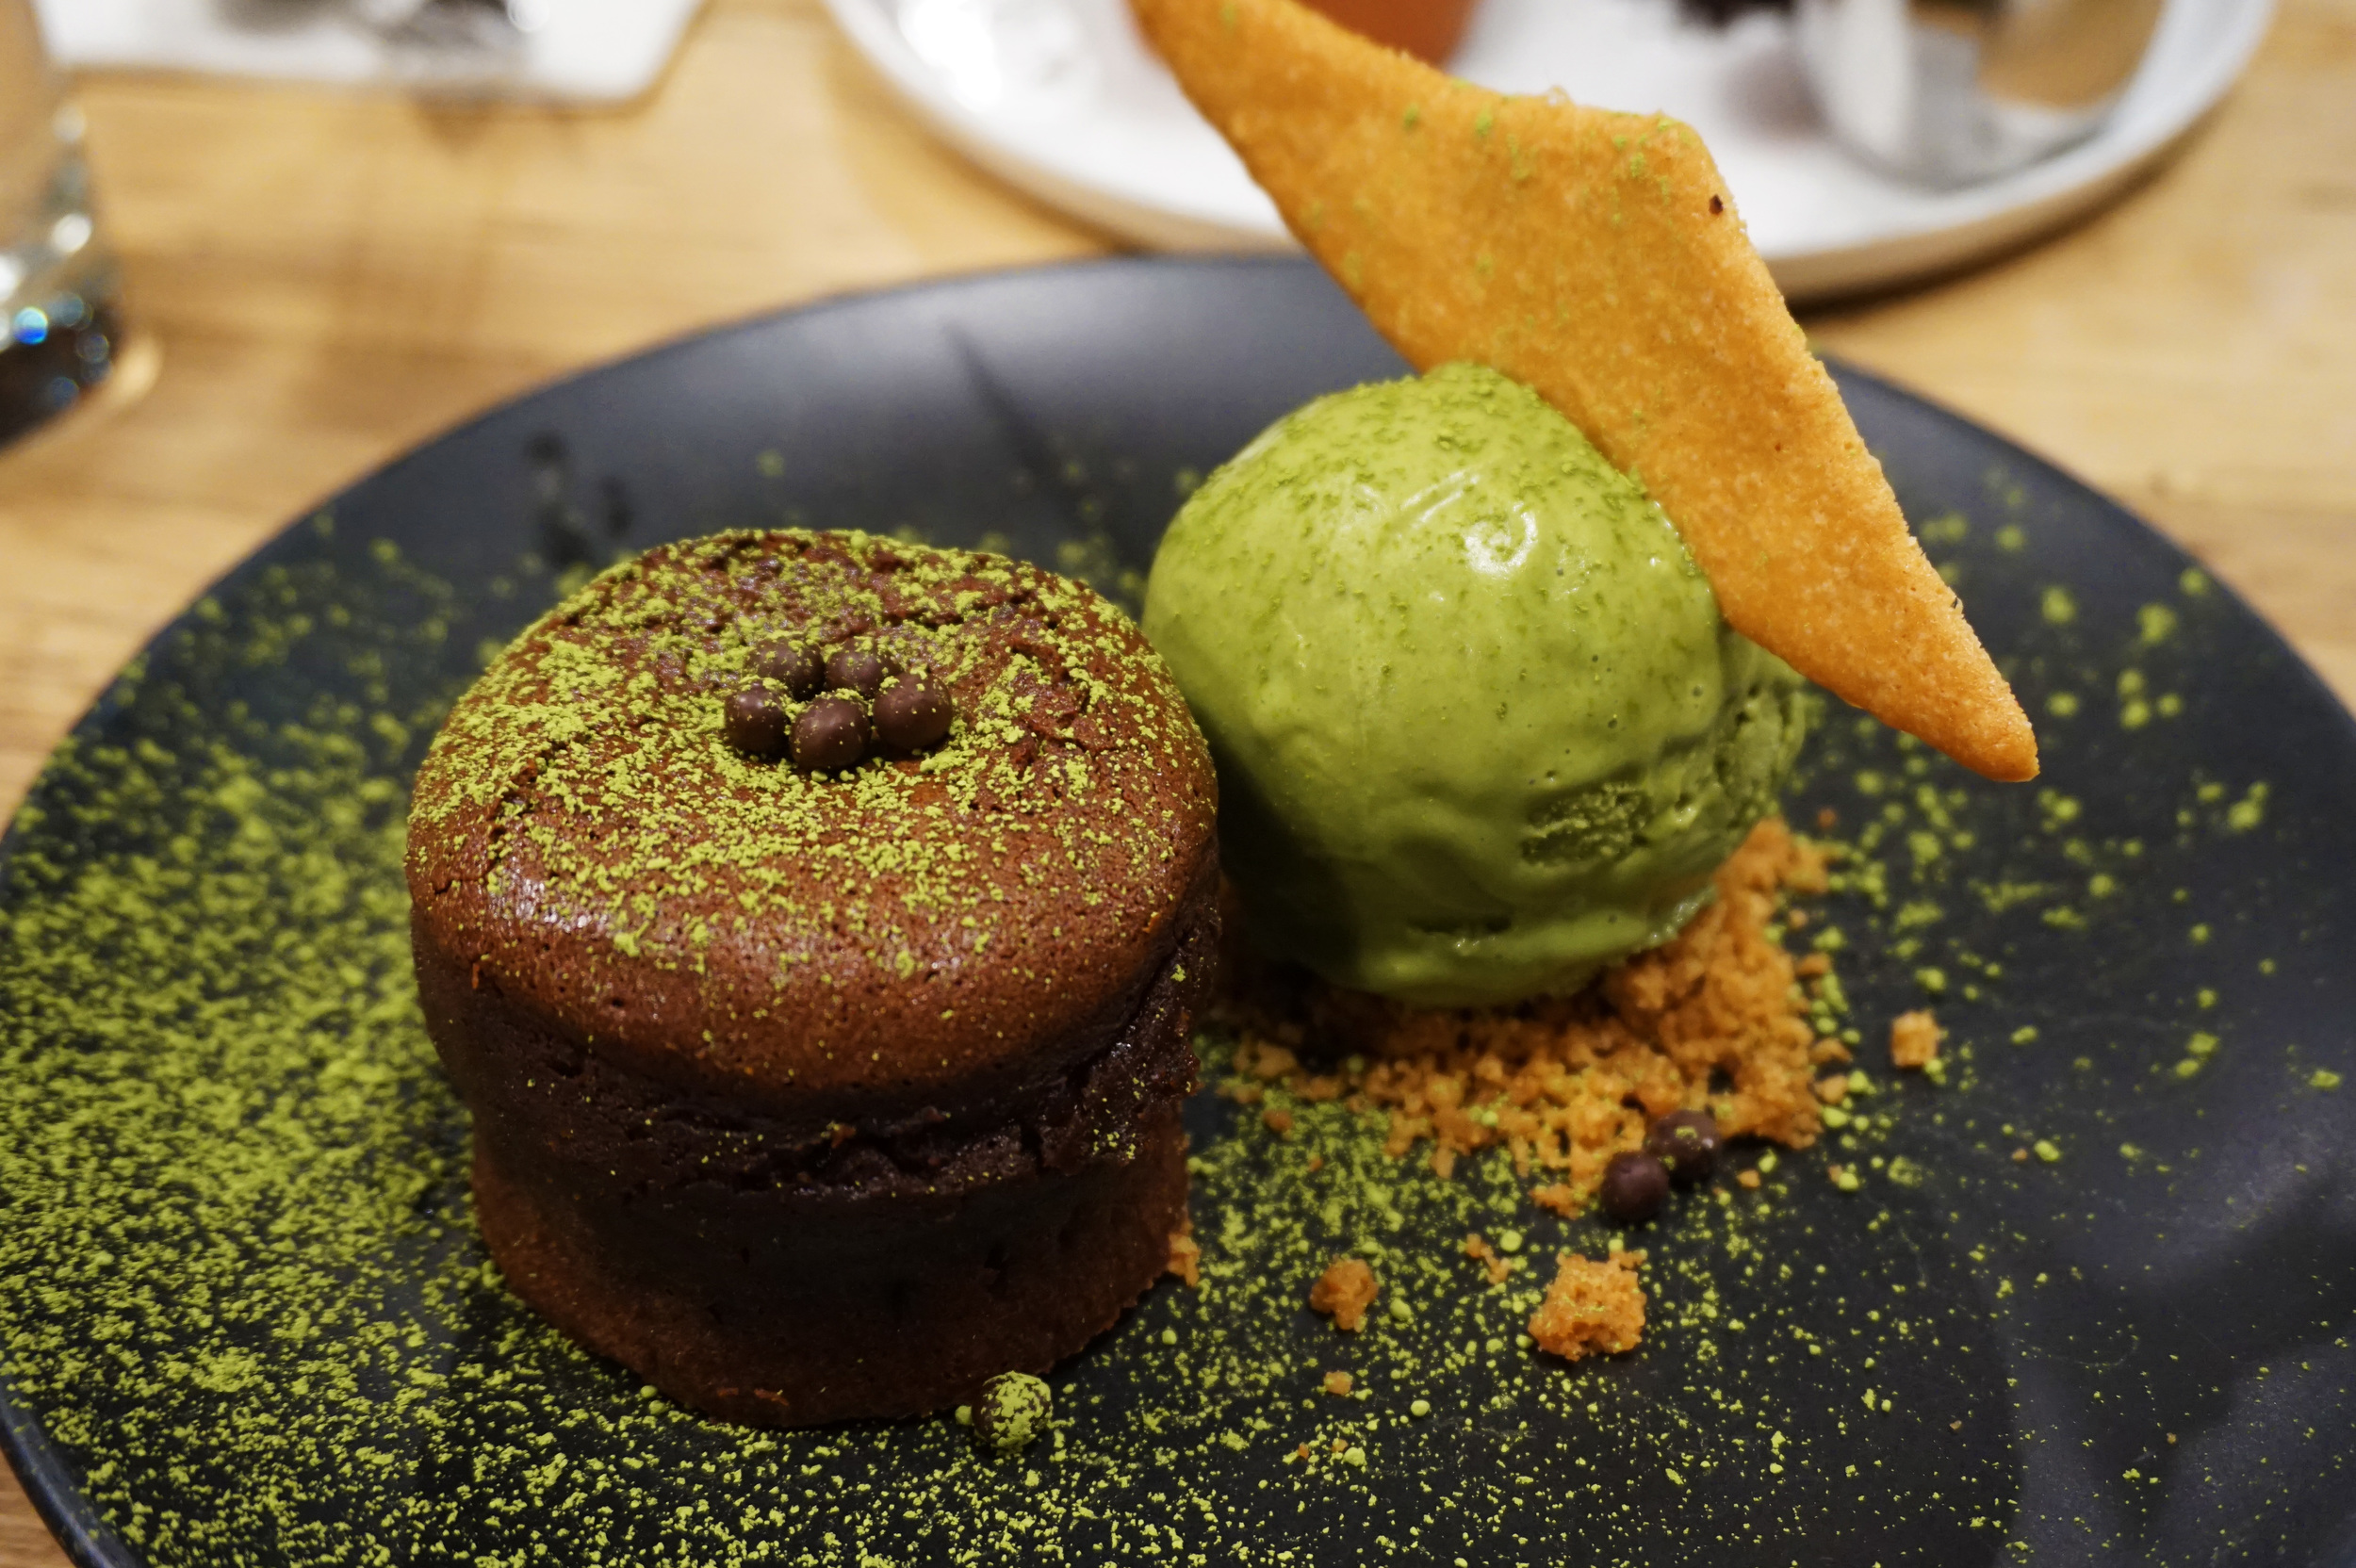 Matcha Green Tea Chocolate Lava Cake (it was just as amazing as it sounds)